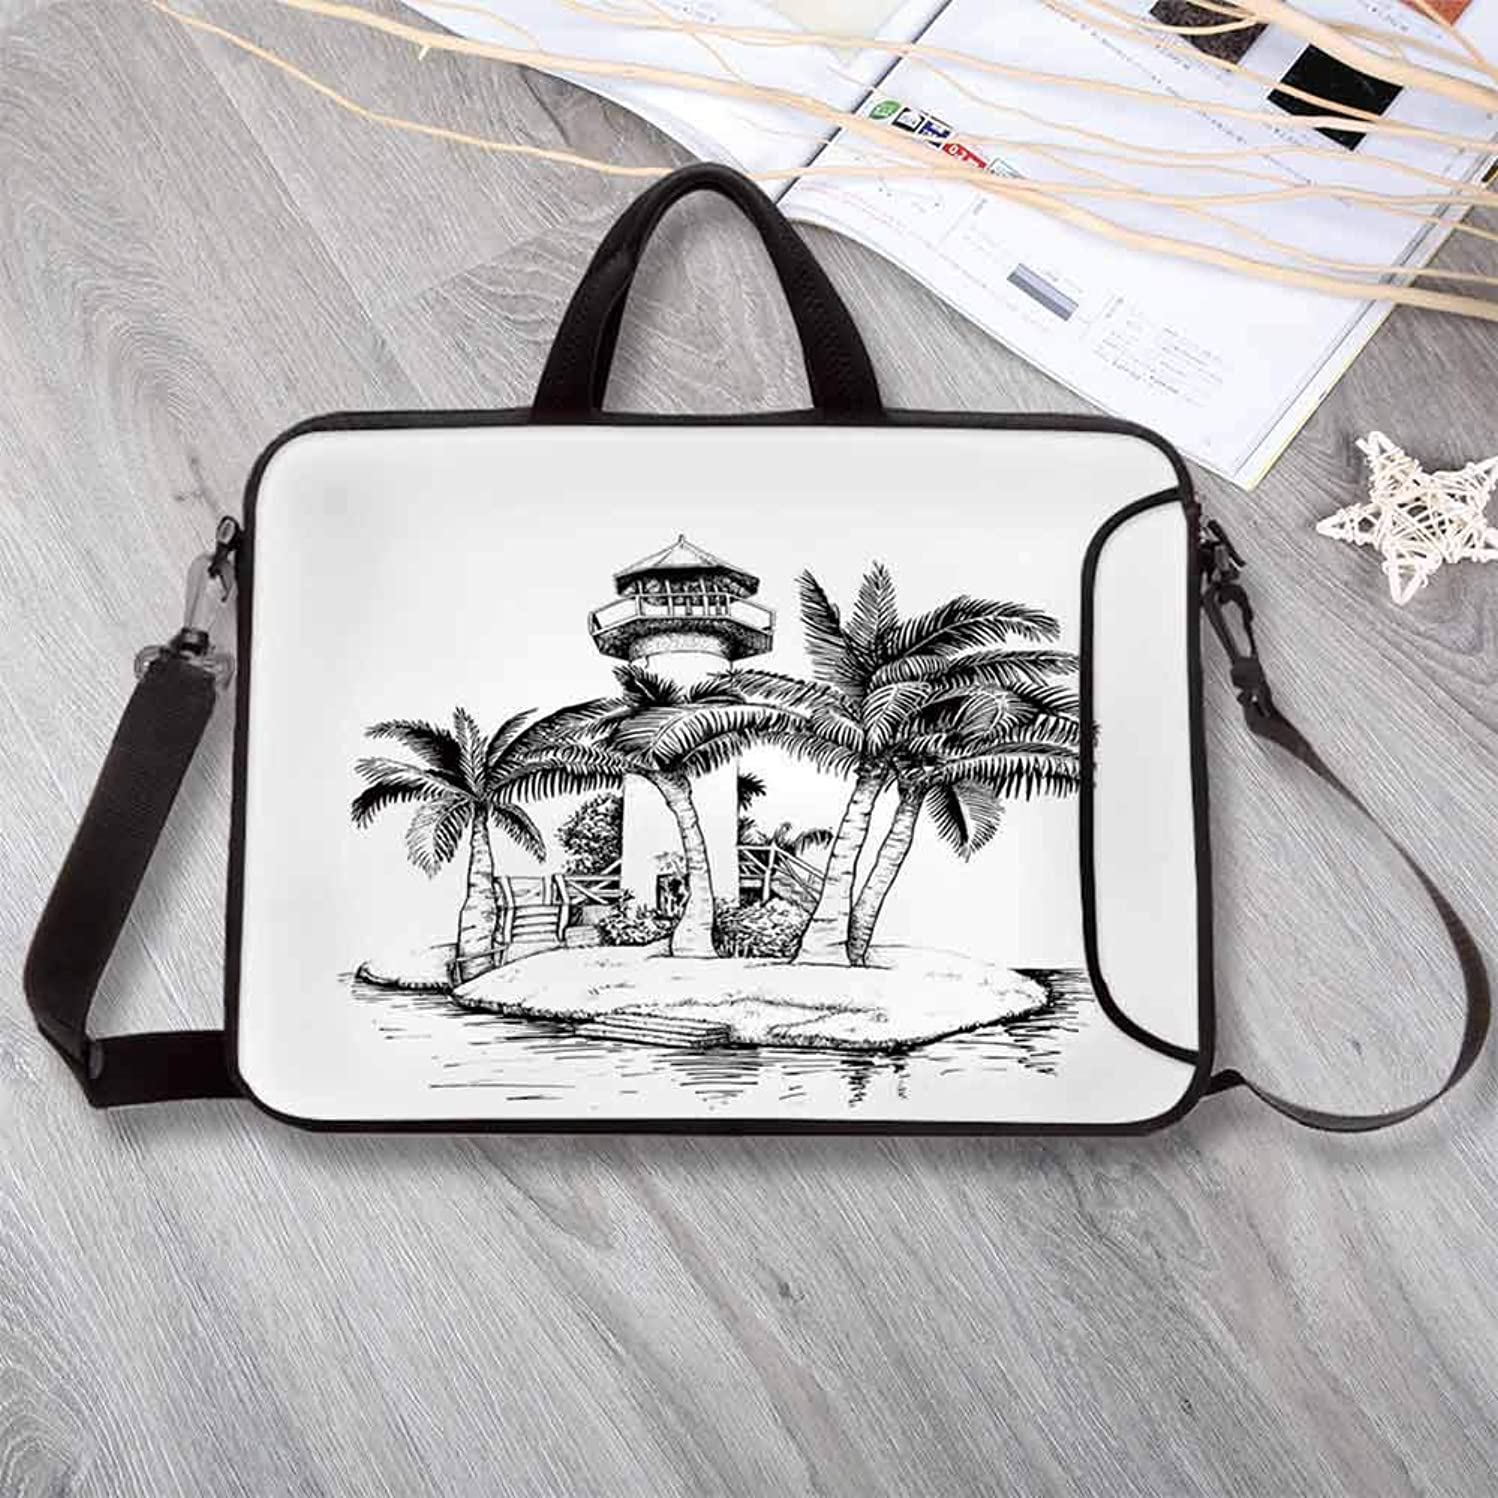 "Tropical Waterproof Neoprene Laptop Bag,Lighthouse on Island Surrounded with Palm Trees Exotic Landscape Sketchy Artwork Laptop Bag for Business Casual or School,14.6""L x 10.6""W x 0.8""H"